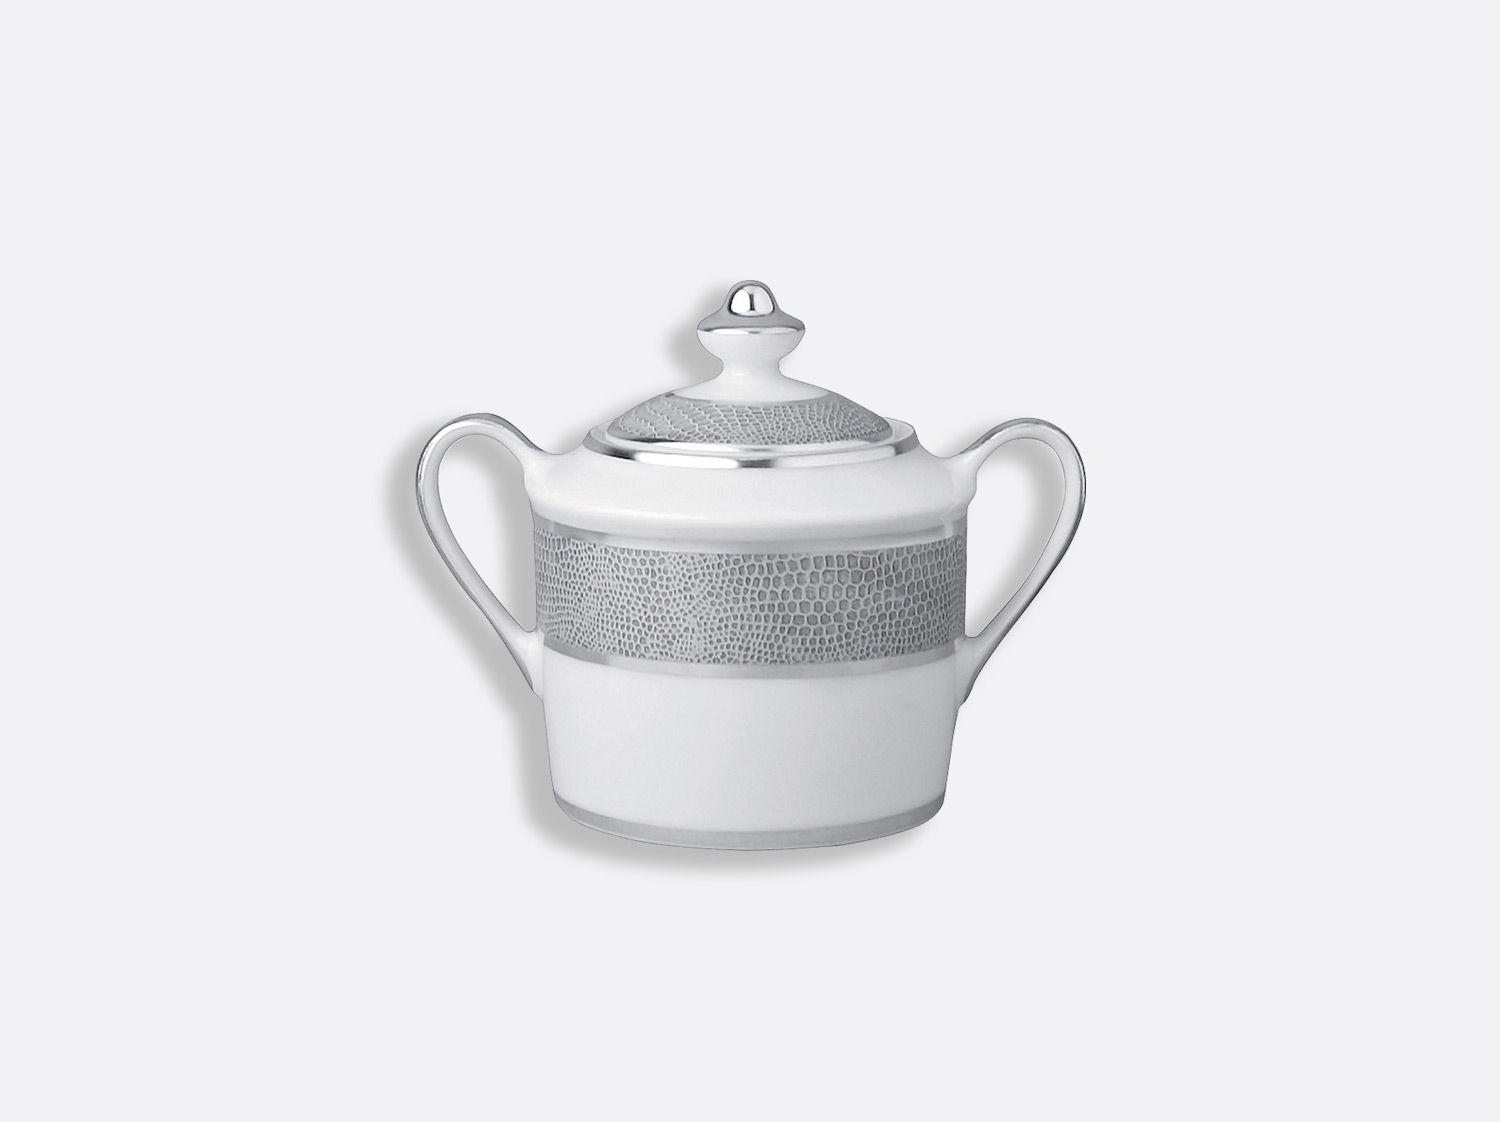 China Sugar bowl 6 cups 20 cl of the collection Sauvage | Bernardaud